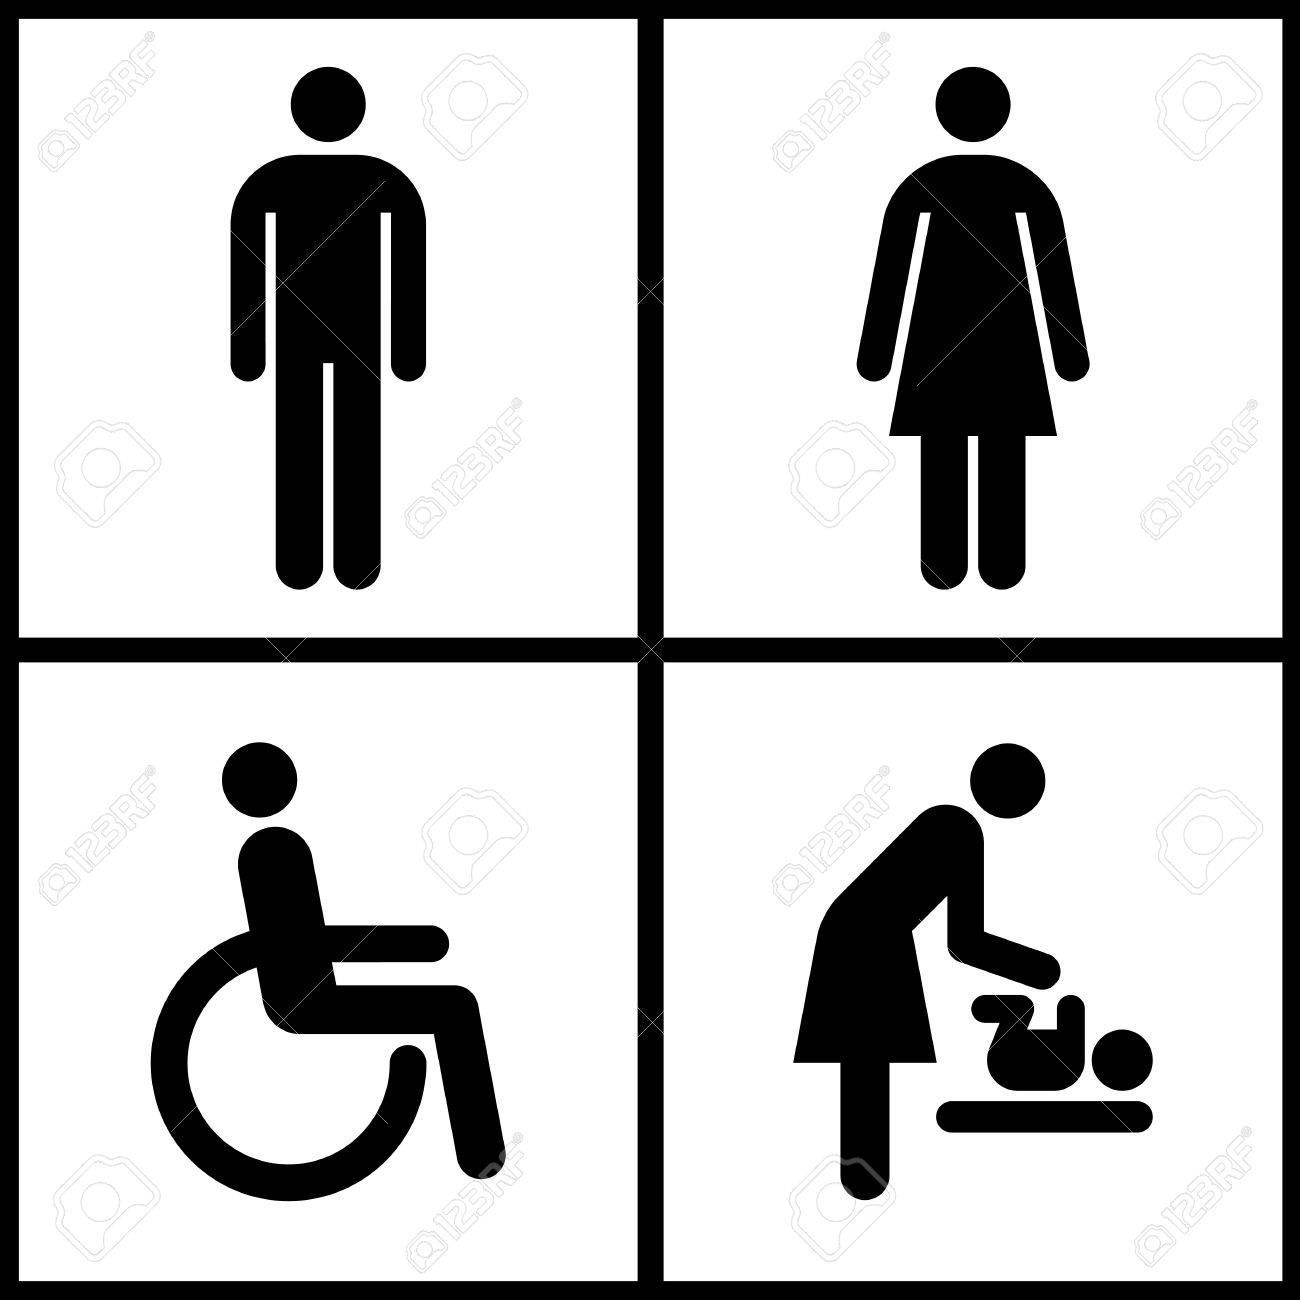 Toilet Sign   Restroom  Mother room and Disabled sign Stock Vector    25332050. Toilet Sign   Restroom  Mother Room And Disabled Sign Royalty Free